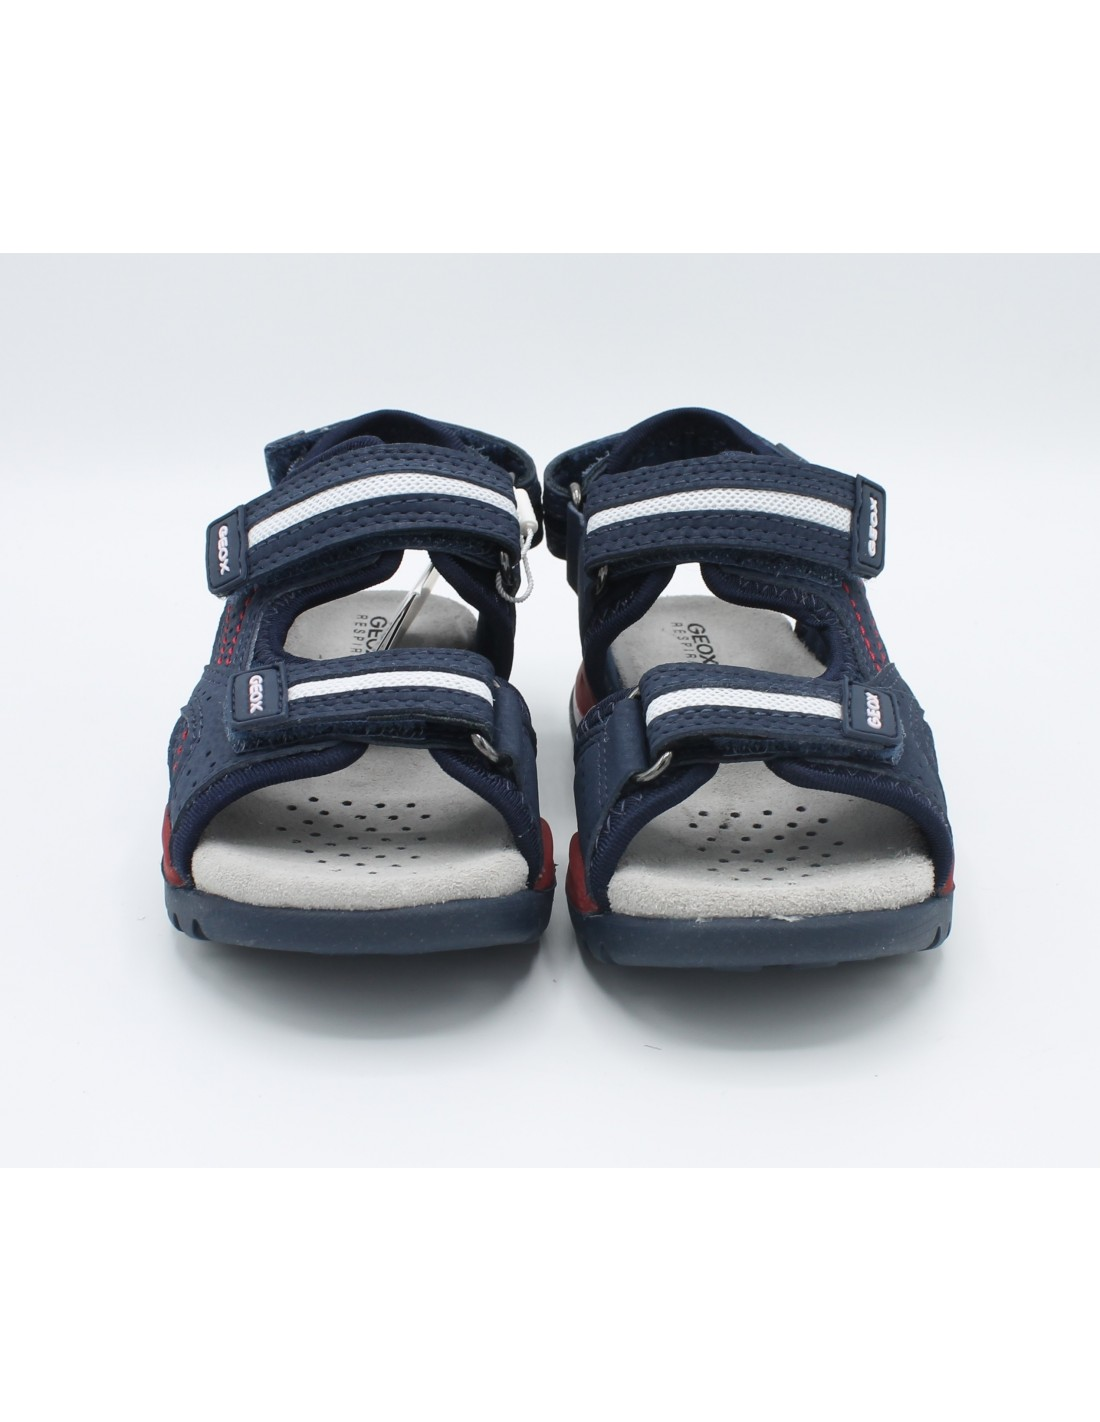 SALE BOYS CHILD KIDS SUMMER SANDALS SHOES AMERICAN CLUB HASBY SALE